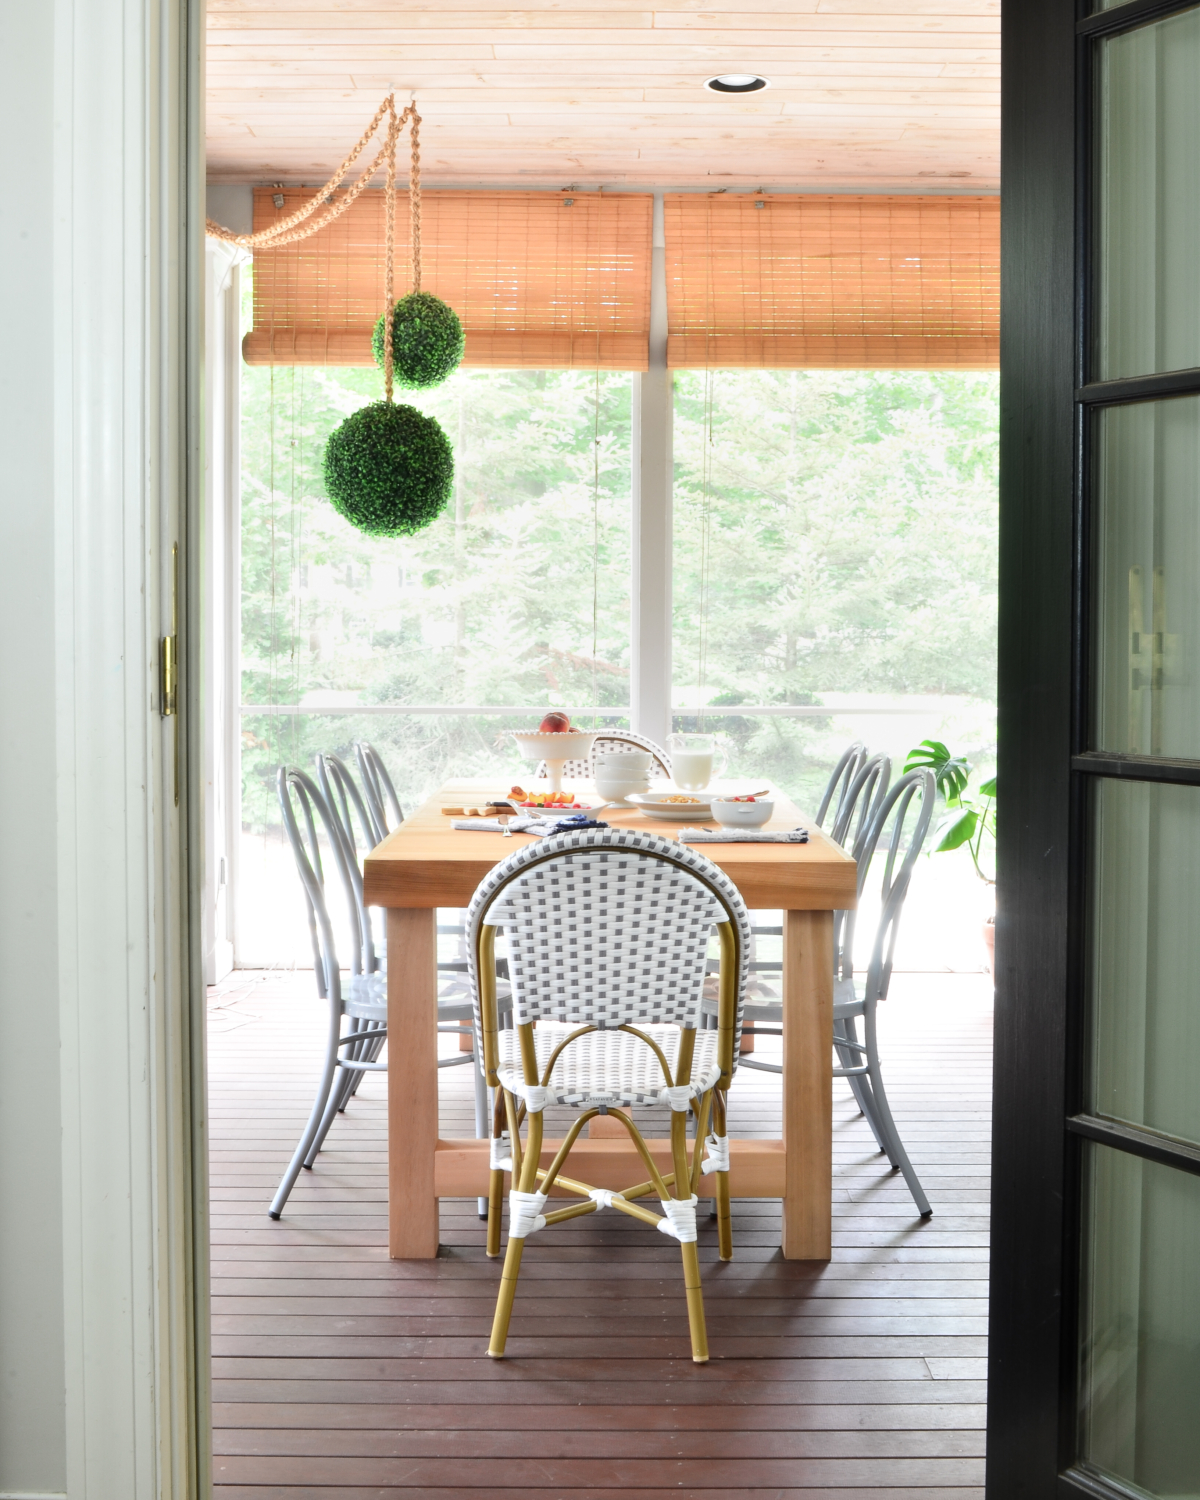 Metal bentwood chairs (that come in nine different colors!) and a DIY outdoor dining table inspired by a $4000 Restoration Hardware table are the perfect finishing touches to this totally gorgeous screened porch!